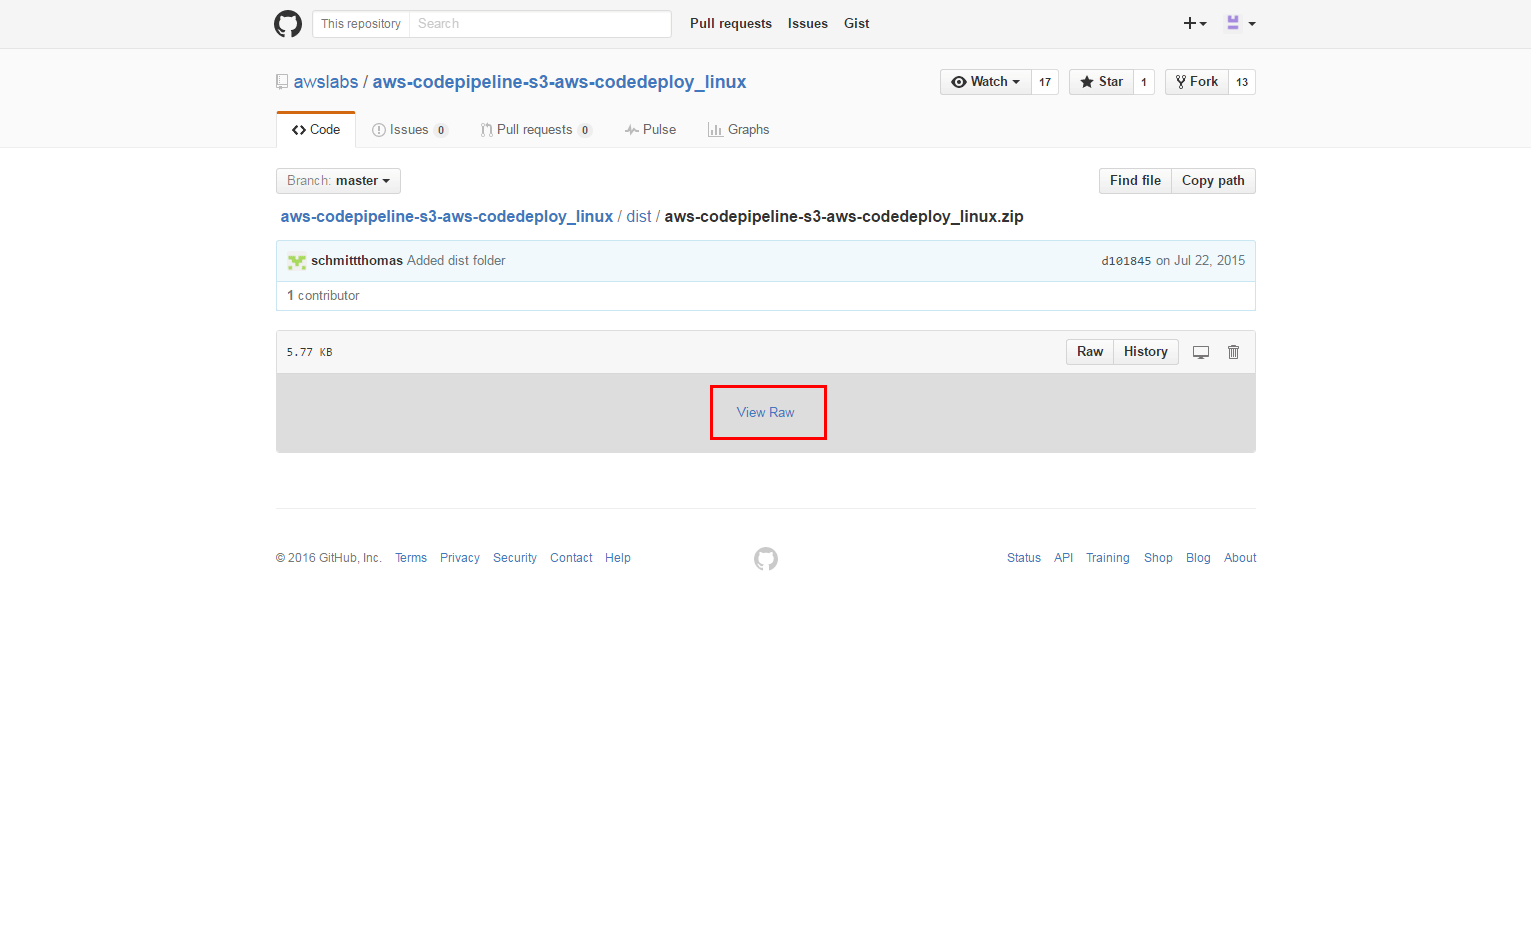 How to set up a continuous deployment pipeline - Amazon Web Services